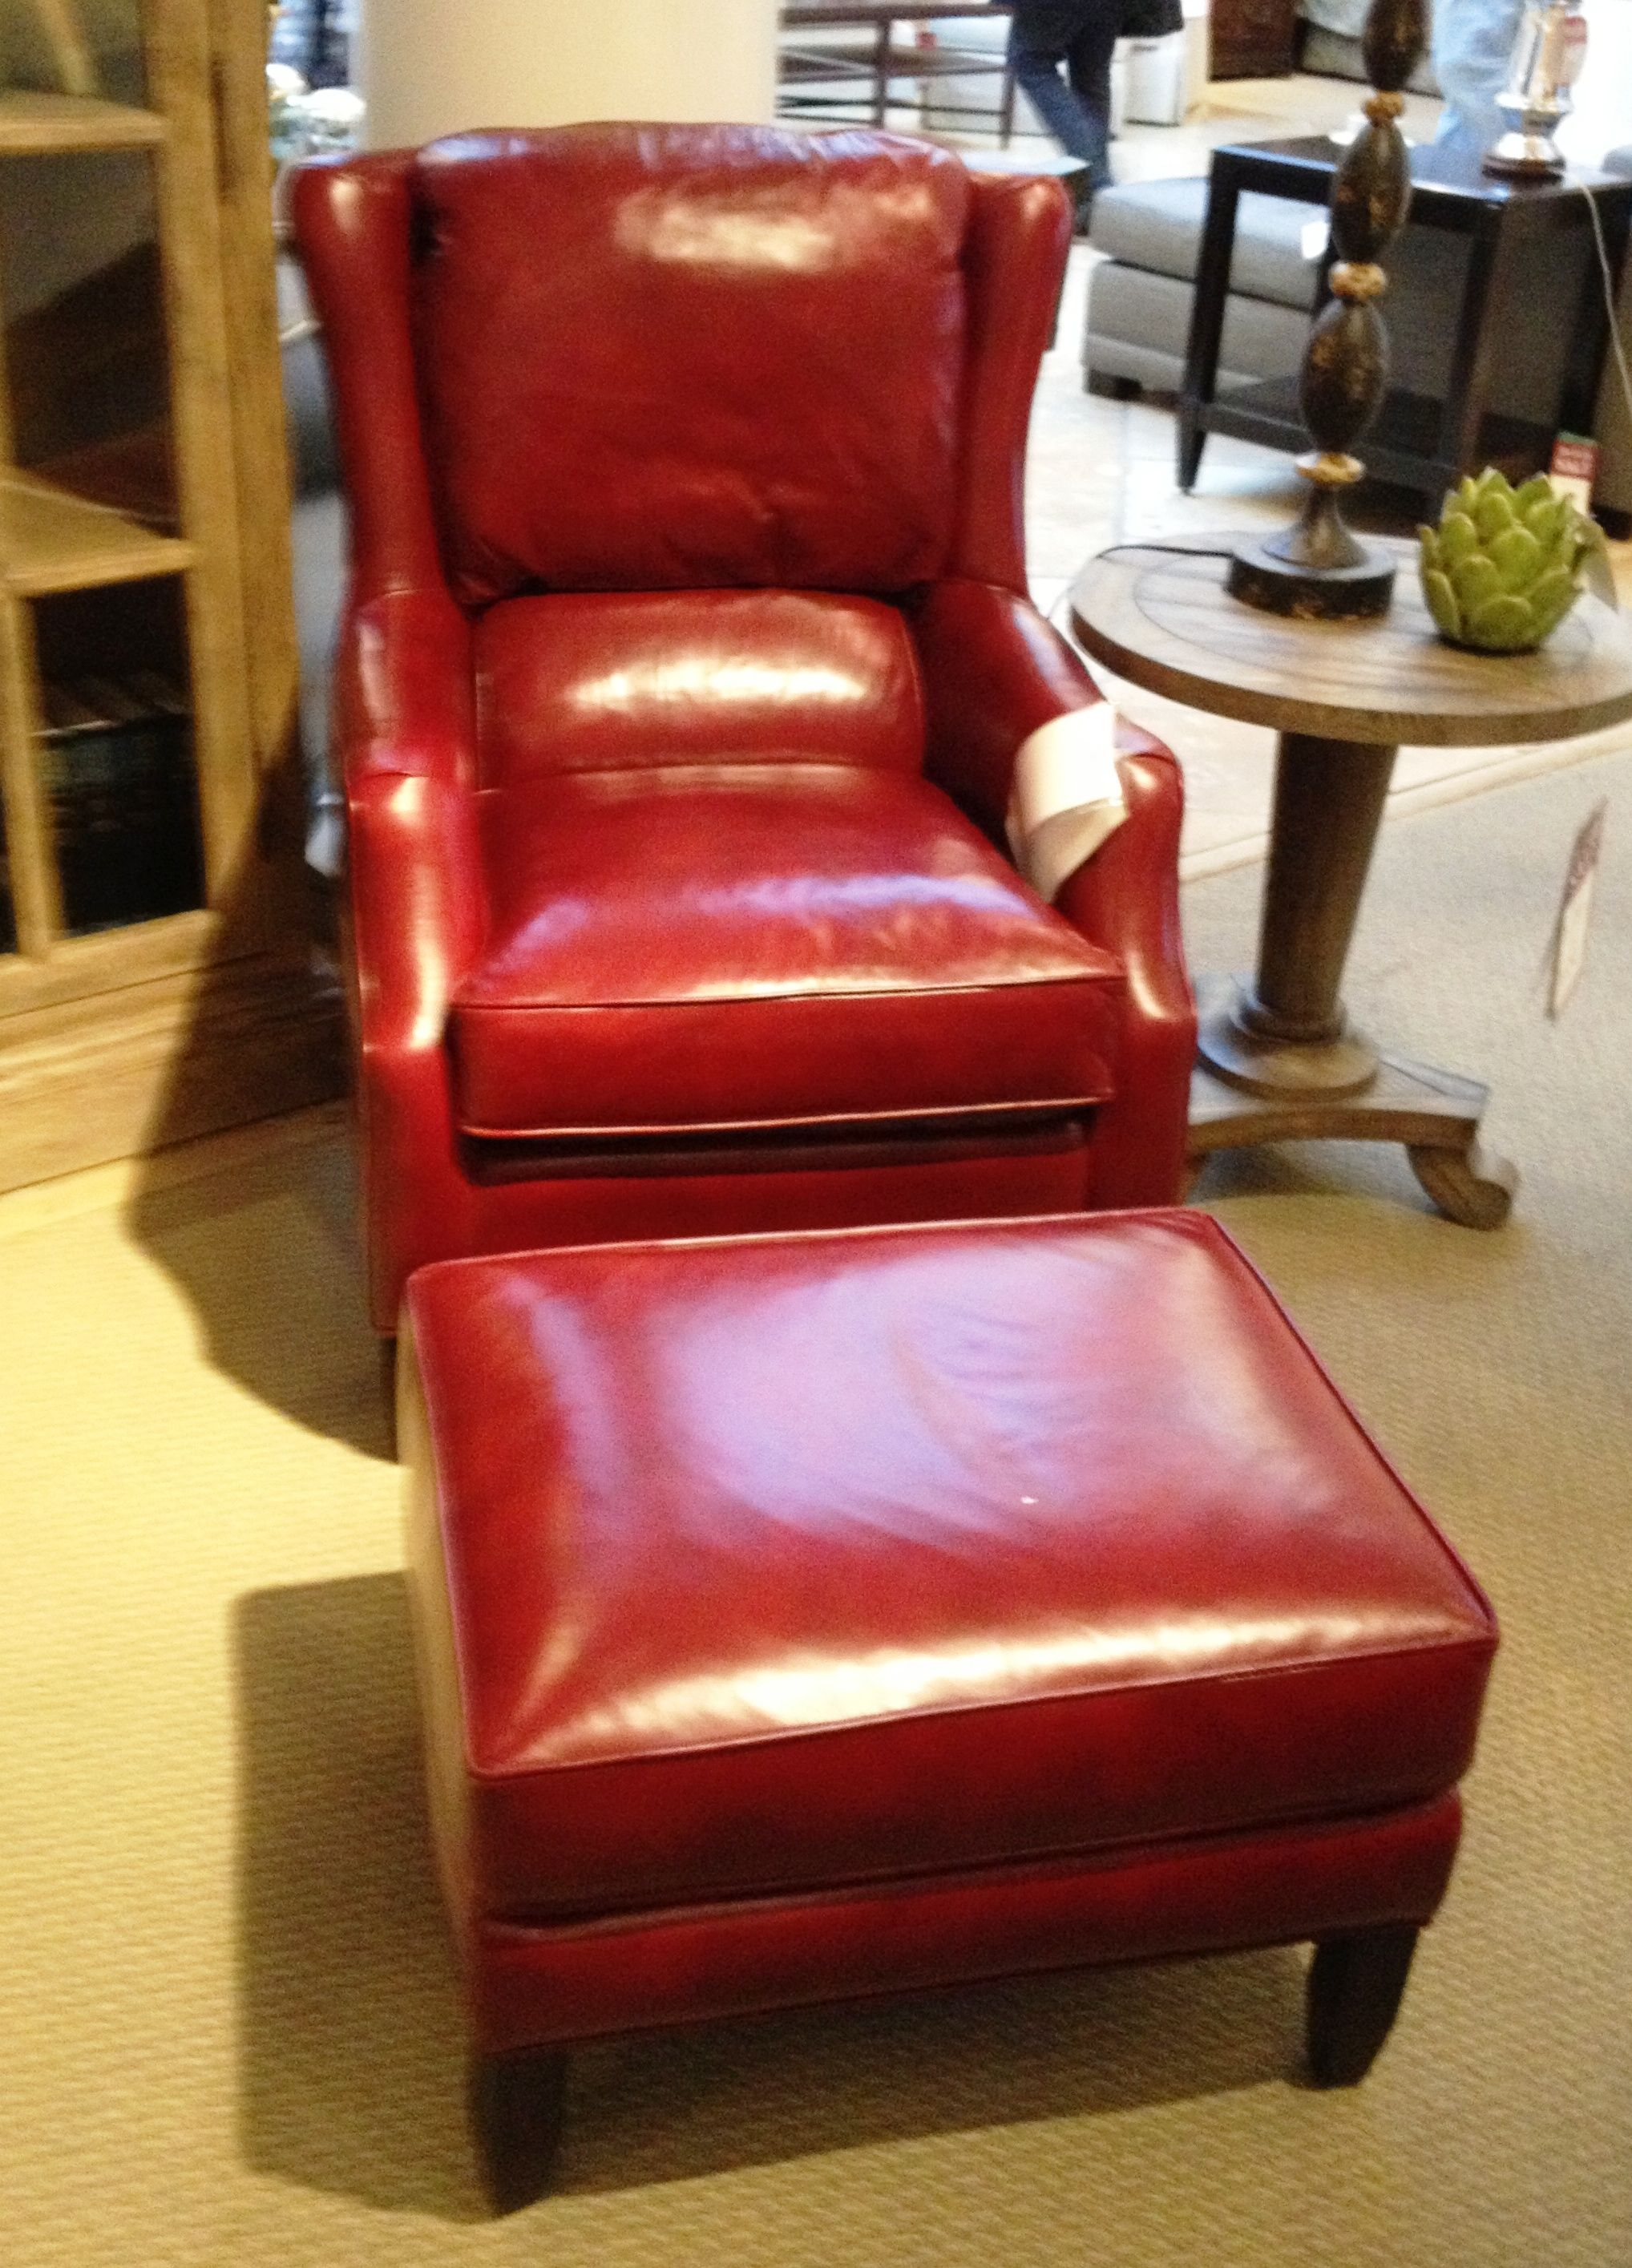 King Hickory red leather chair & ottoman Just bought this